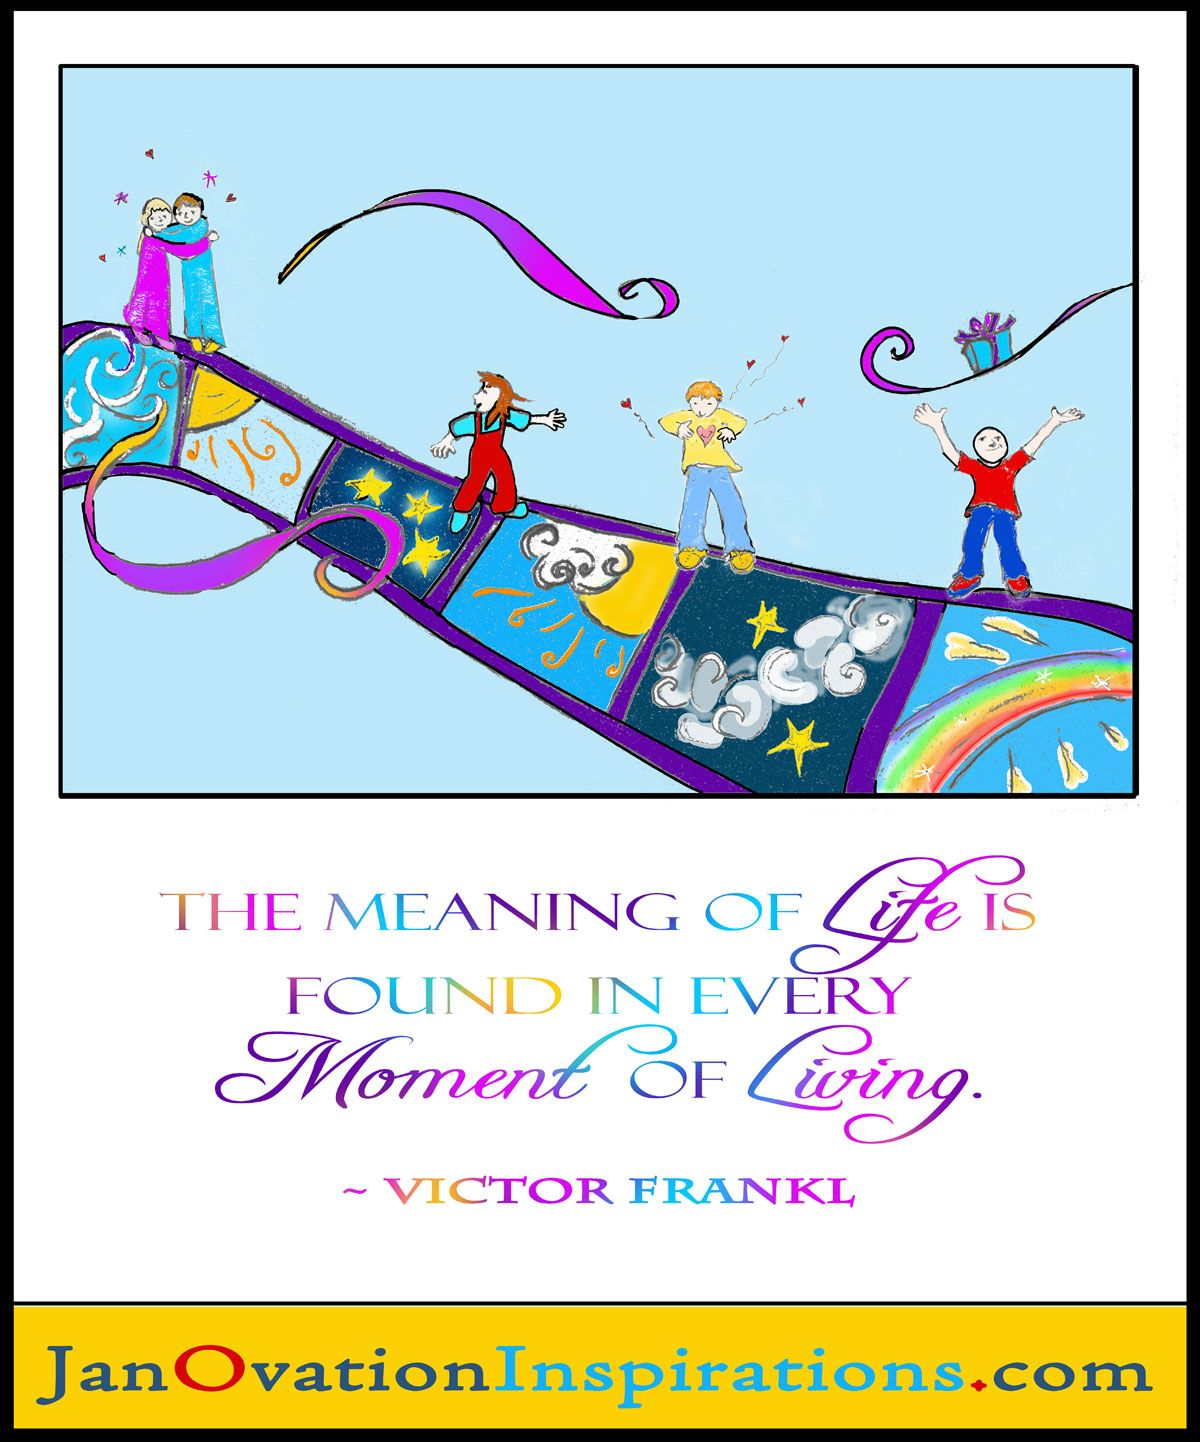 The Meaning of life is found in every moment of living